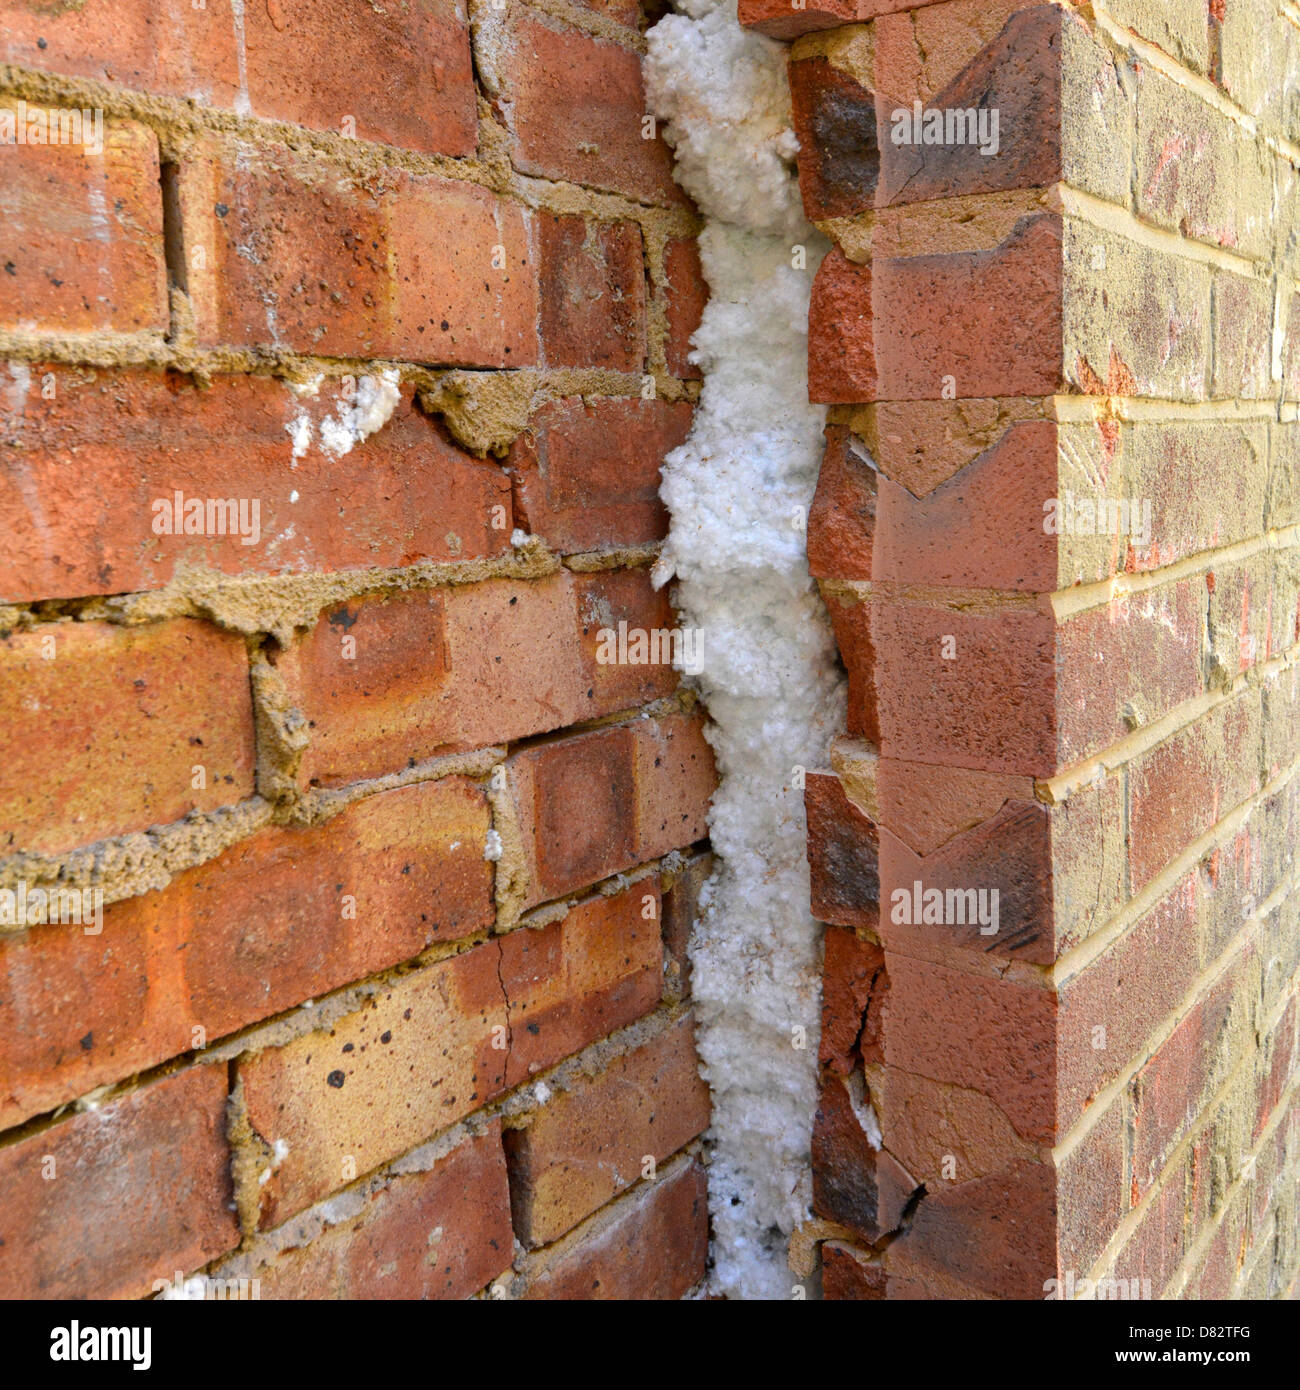 Pumped Cavity Wall Insulation Exposed Forming New